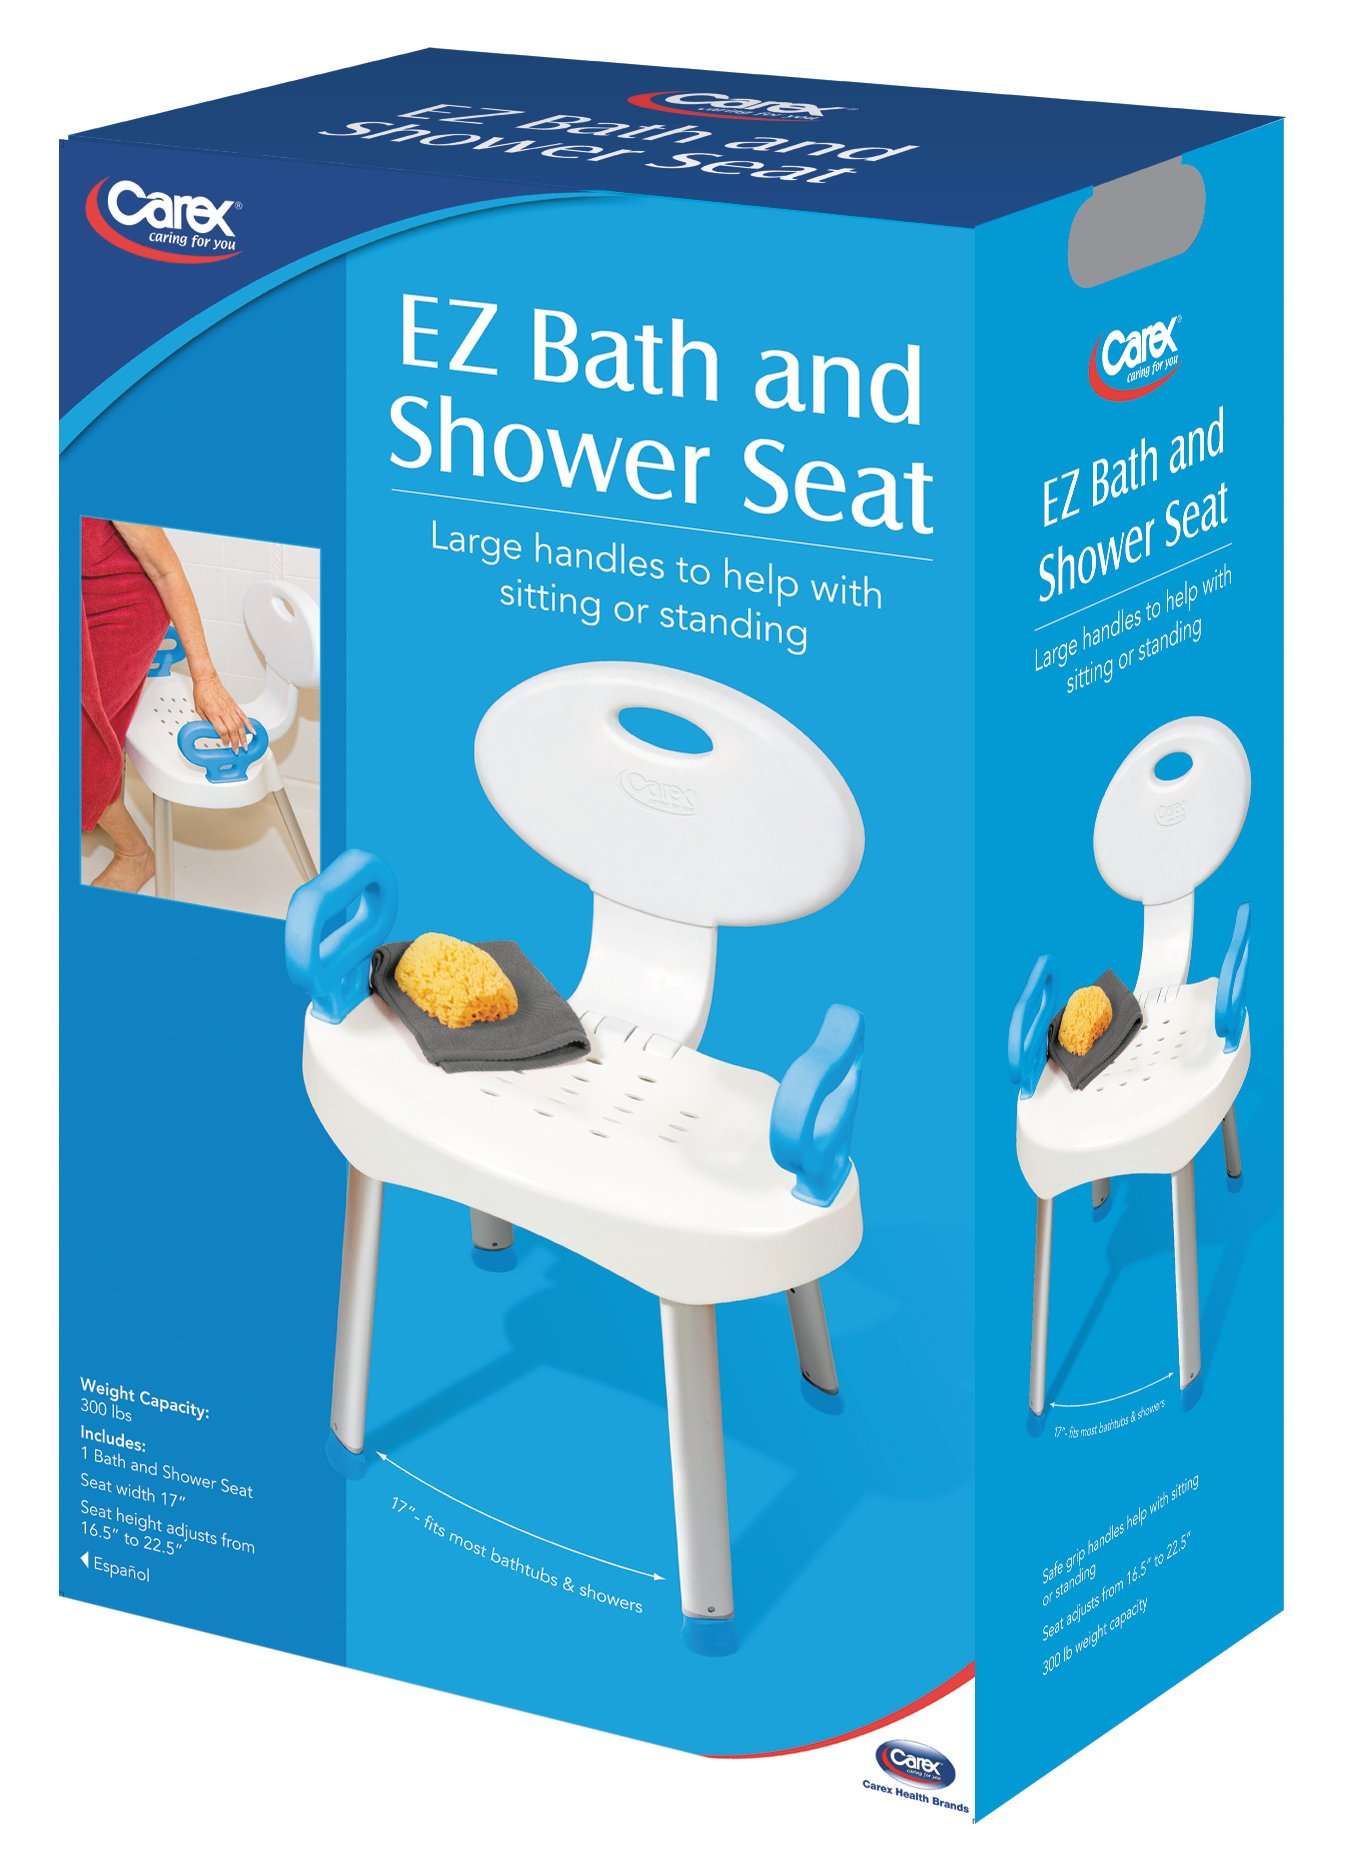 Carex Health Brands E-Z Bath And Shower Seat with Handles for Assistance in Bath or Shower, Adjustable Height, Sturdy Frame Supports Up to 300 Pounds, Safe Entry and Exit from Bath by Carex Health Brands (Image #2)